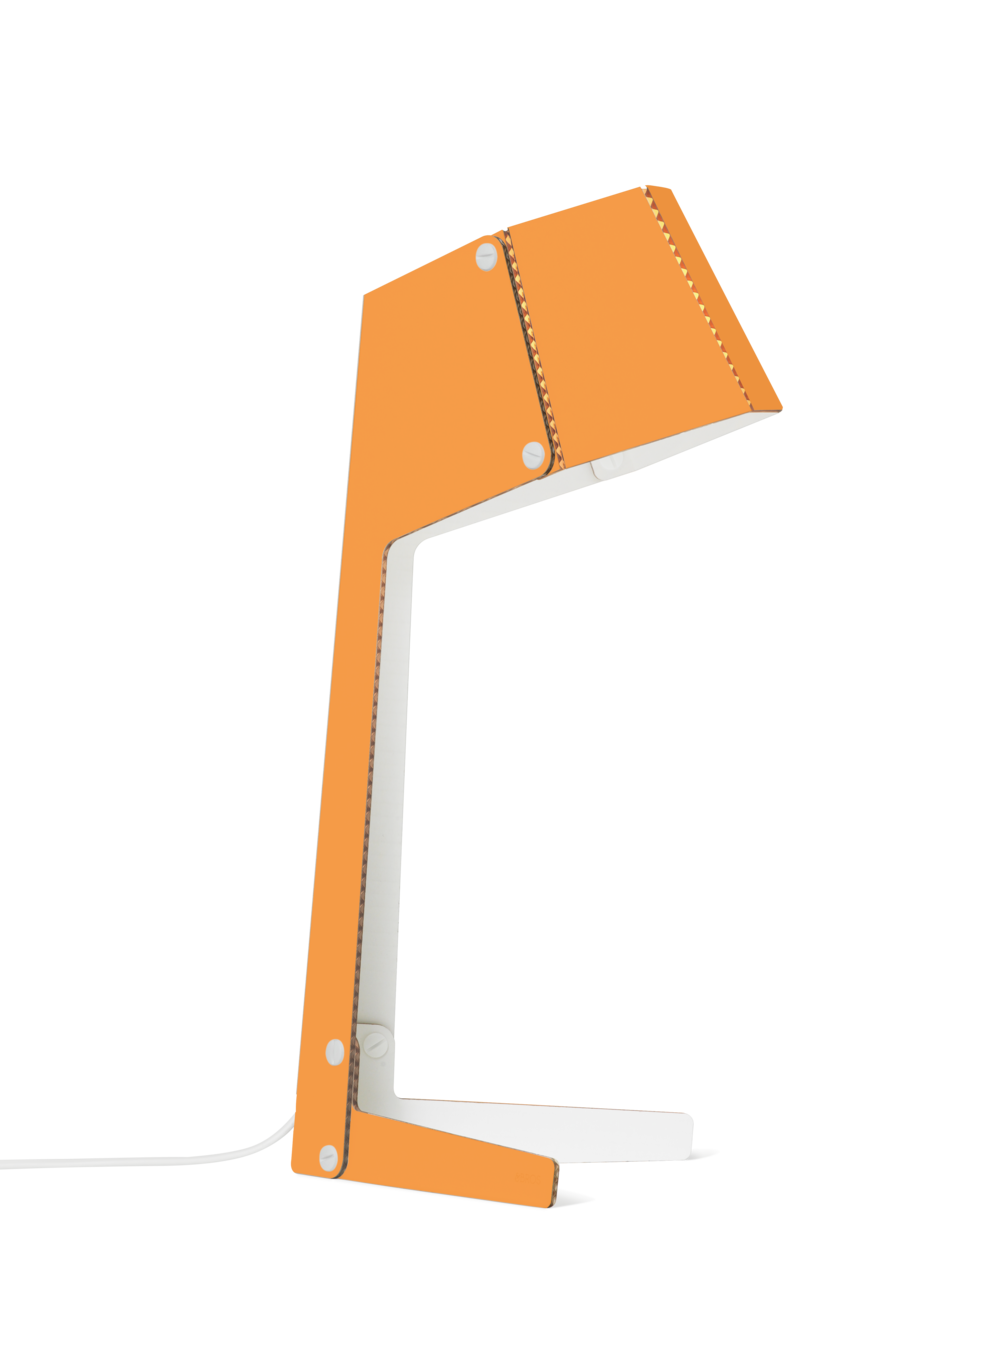 ANDBROS Cardboard Light Model No. 3 / Orange